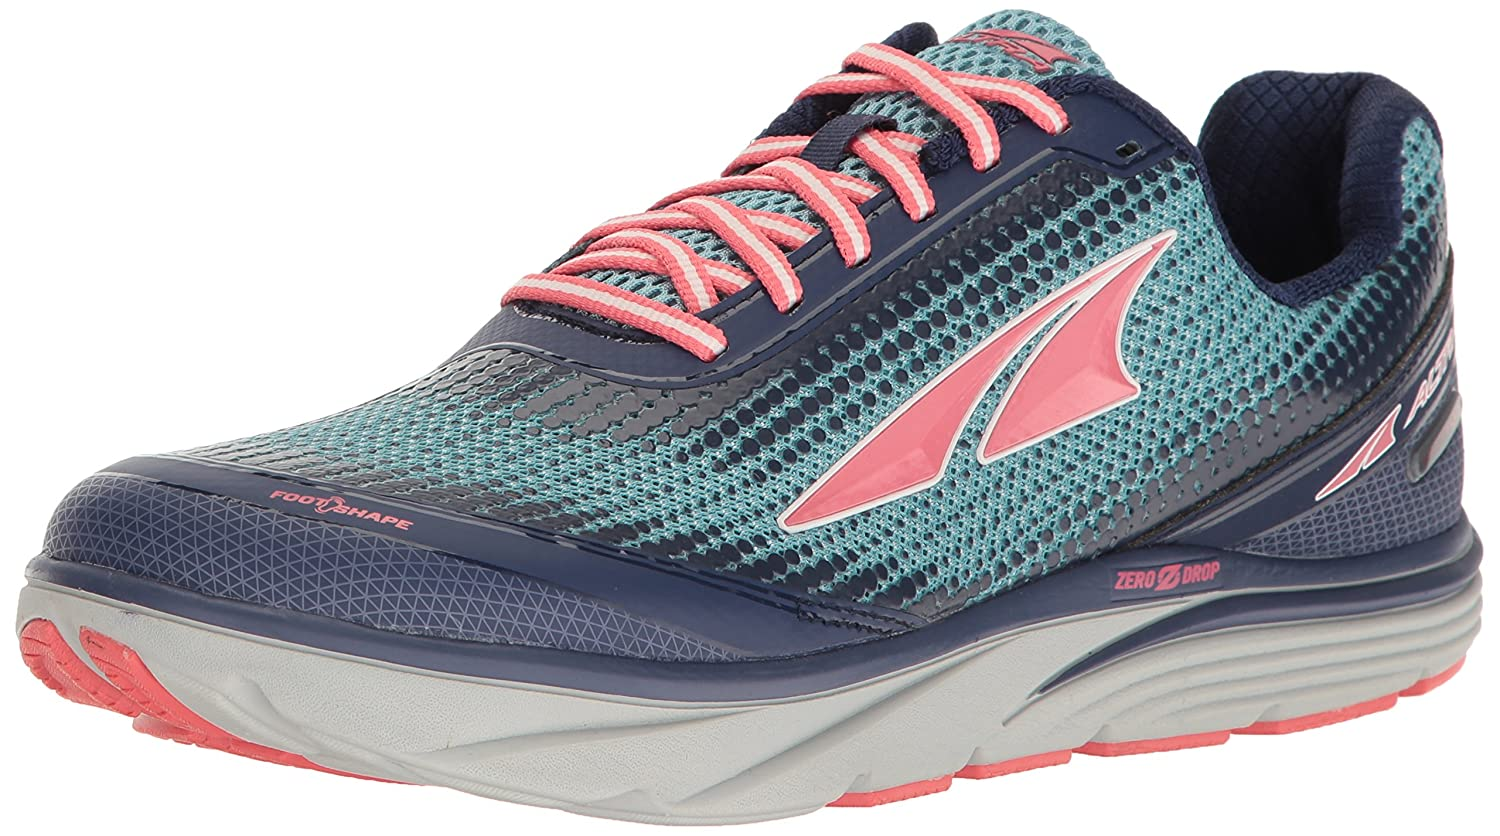 Altra Women's Torin 3.0 Running-Shoes B01MQYJ0JC 6 B(M) US|Blue/Coral